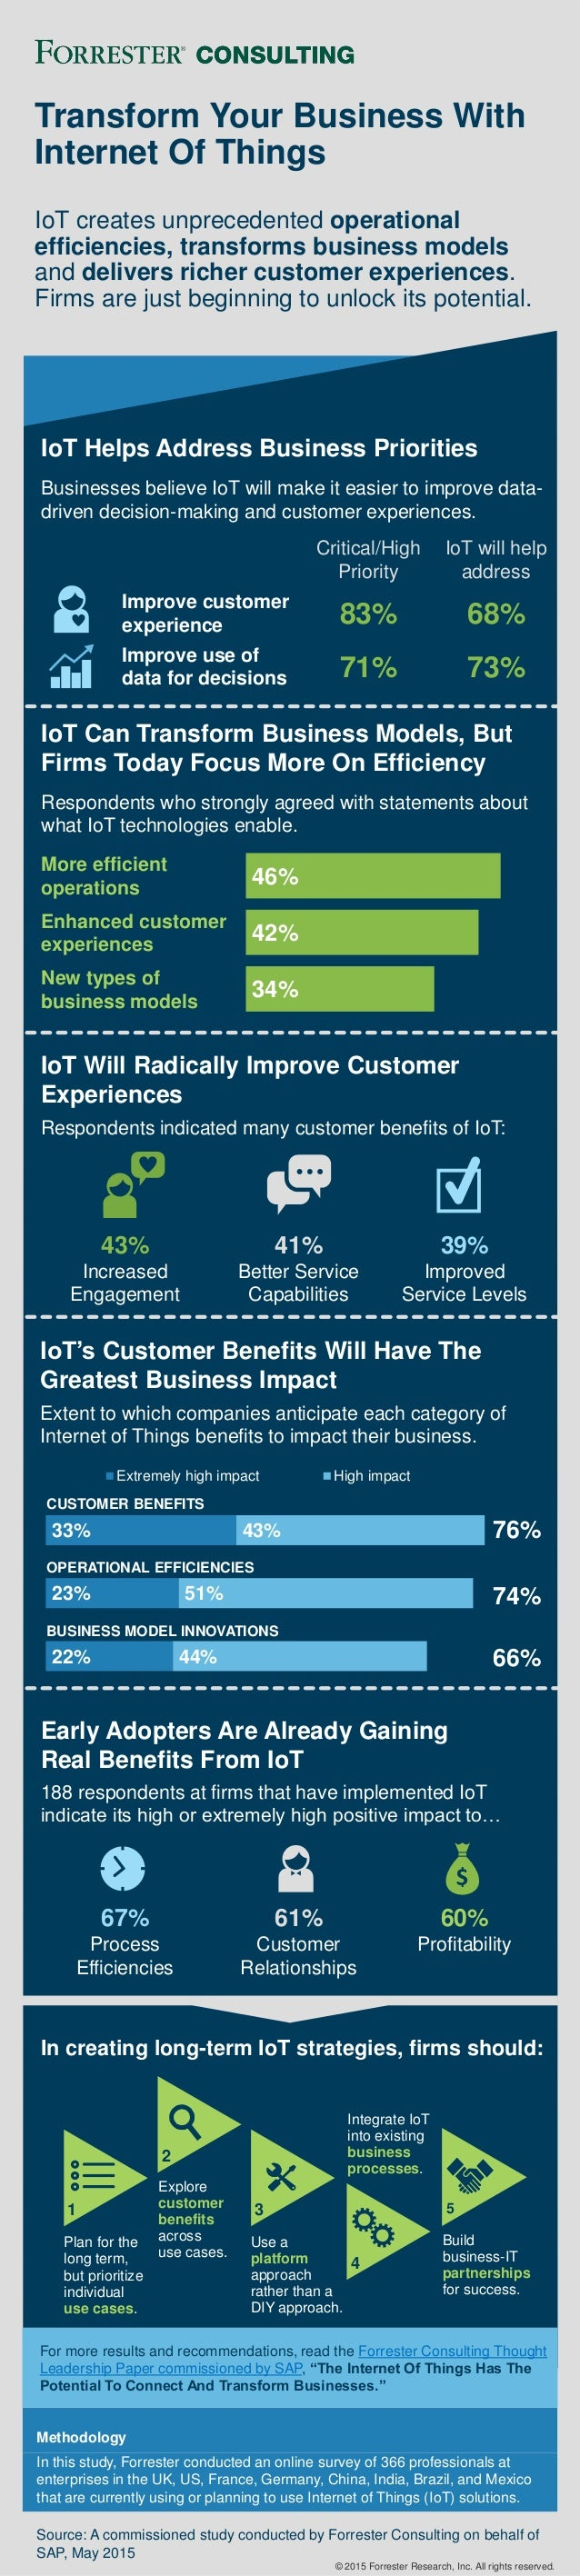 4 3 2 1 Early Adopters Are Already Gaining Real Benefits From IoT 188 respondents at firms that have implemented IoT indic...